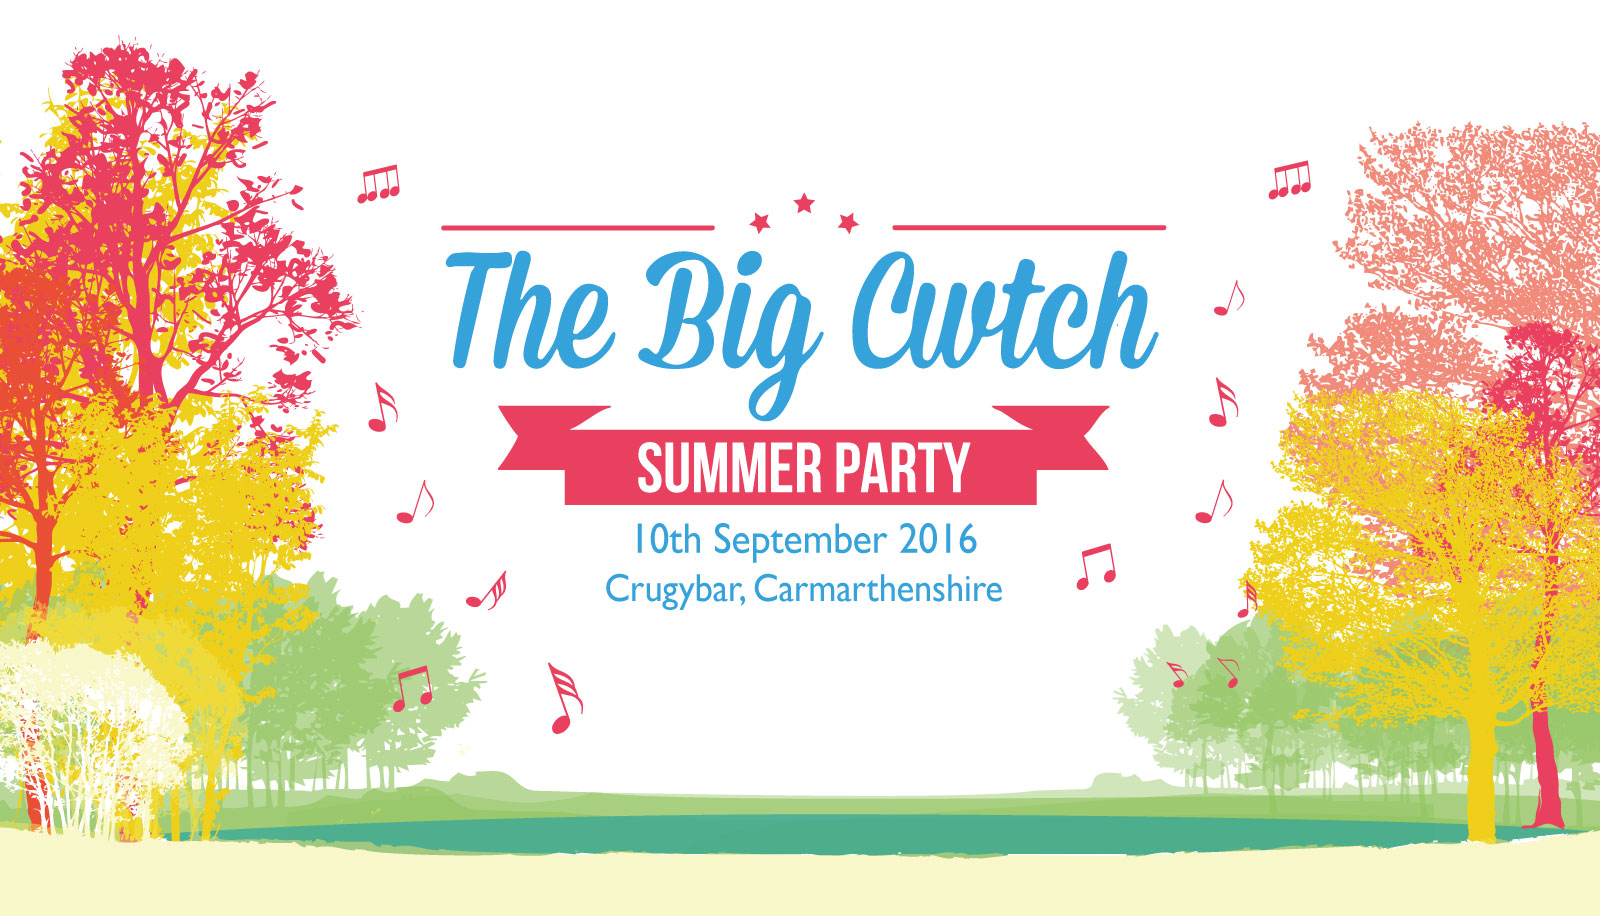 The Big Cwtch Summer Party 2016